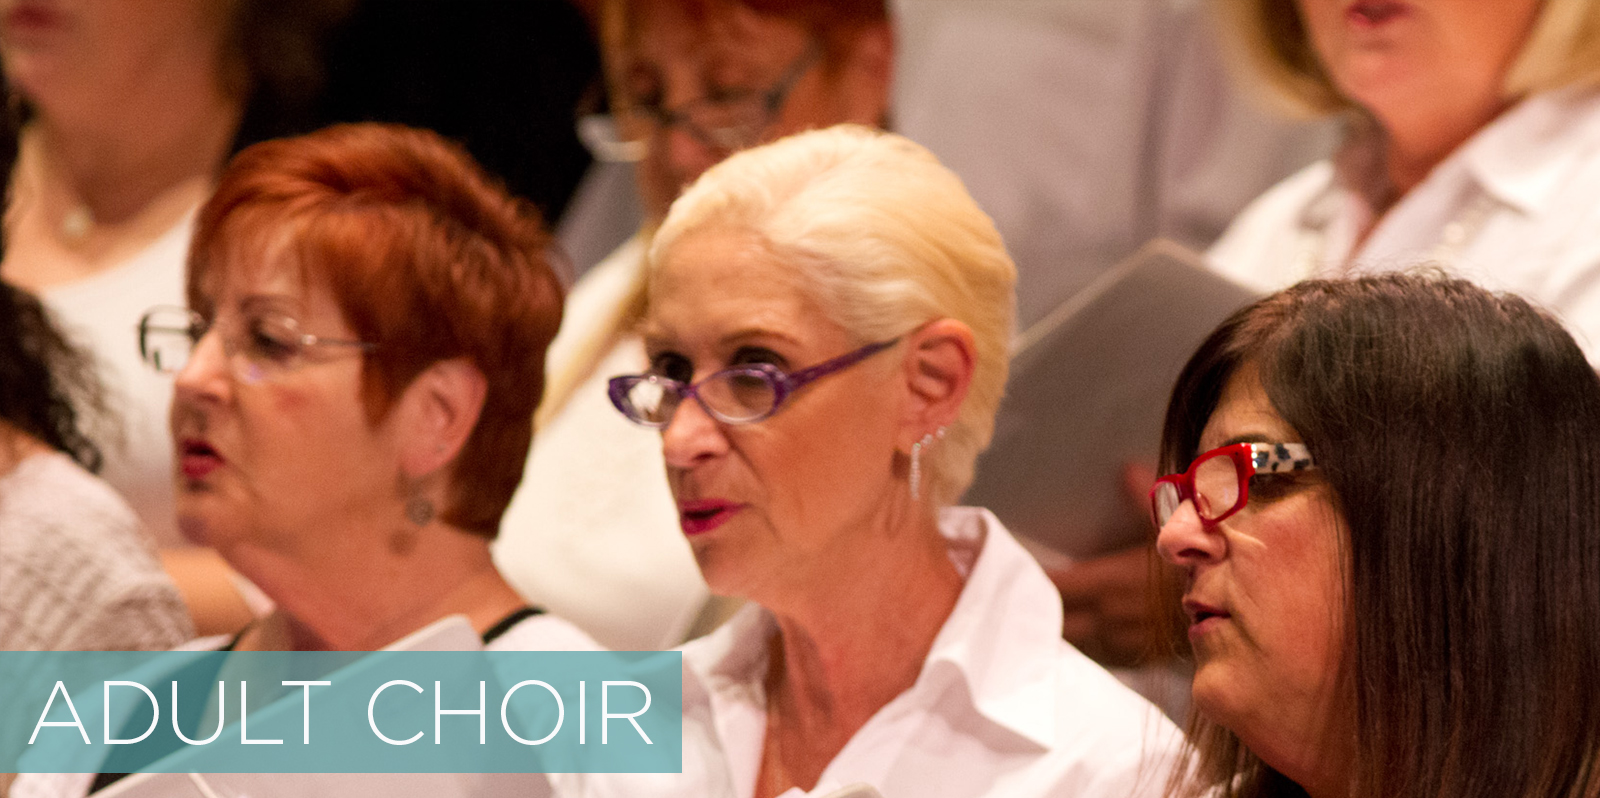 /home/templeis/public_html/images/header_image/1562962451header_image1453252526header_imageLP_01_adult_choir.jpg.